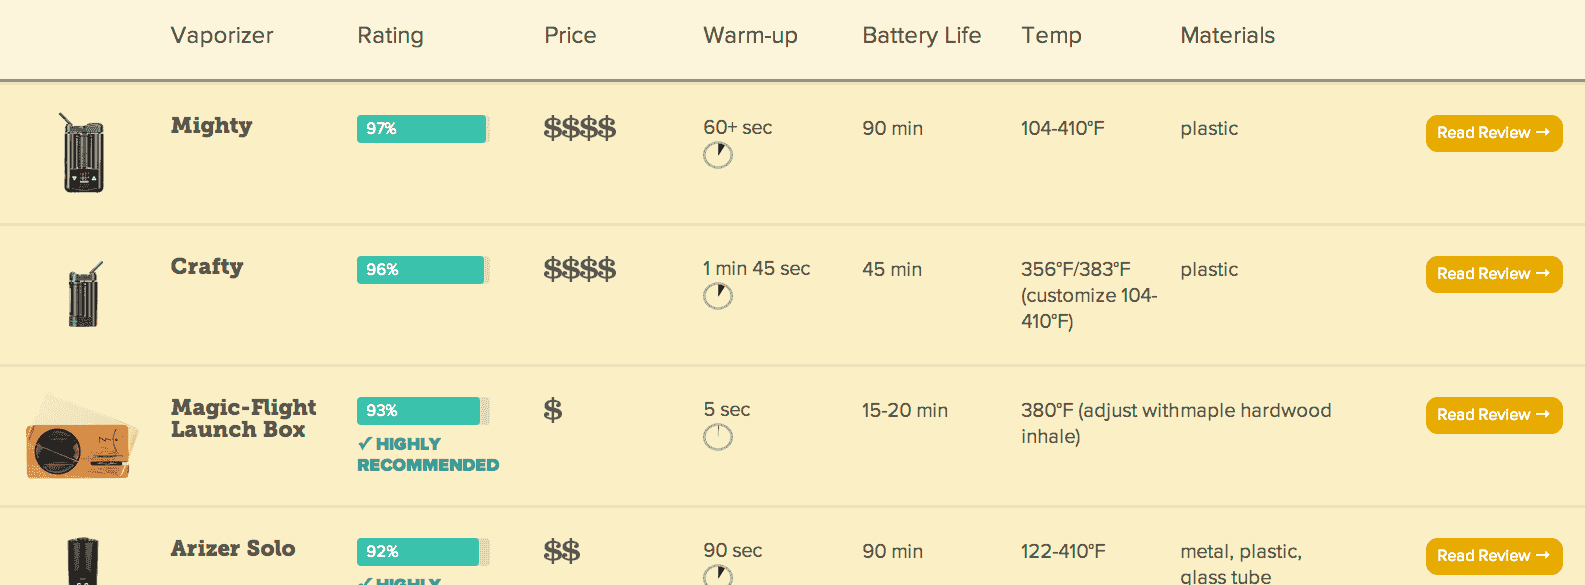 Comparison chart of vaporizer stats: compare battery life, price, charge time, etc.